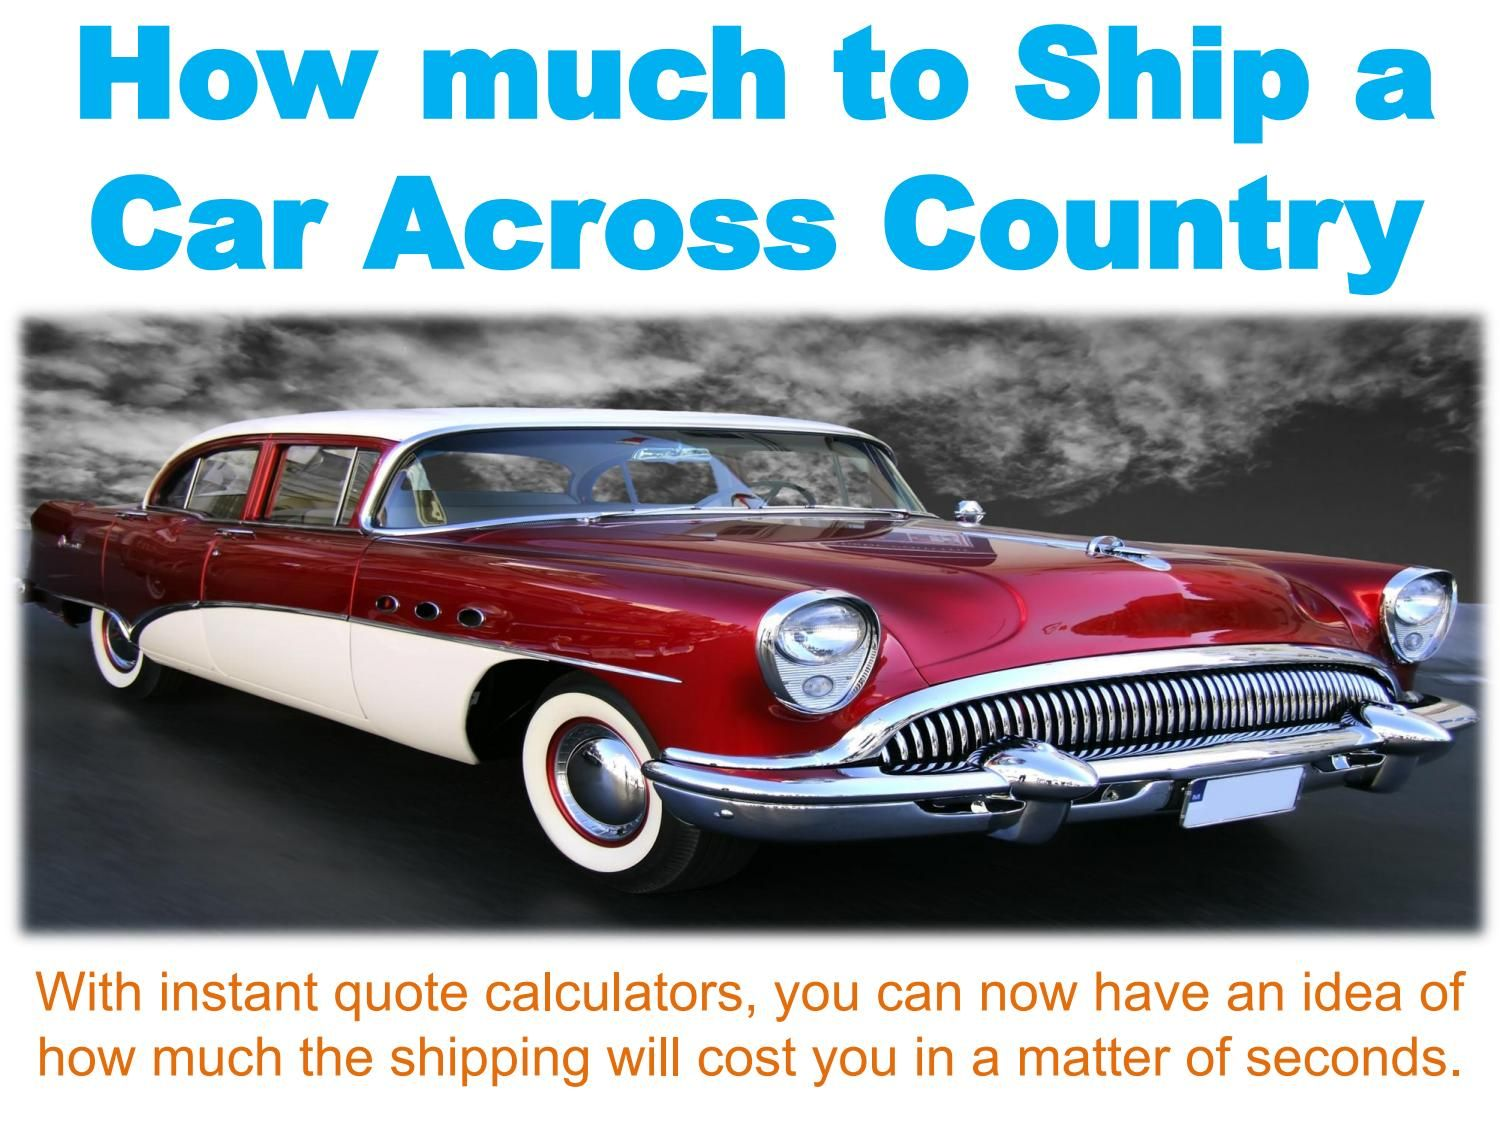 How much to Ship a Car across Country Car, Country, Ship